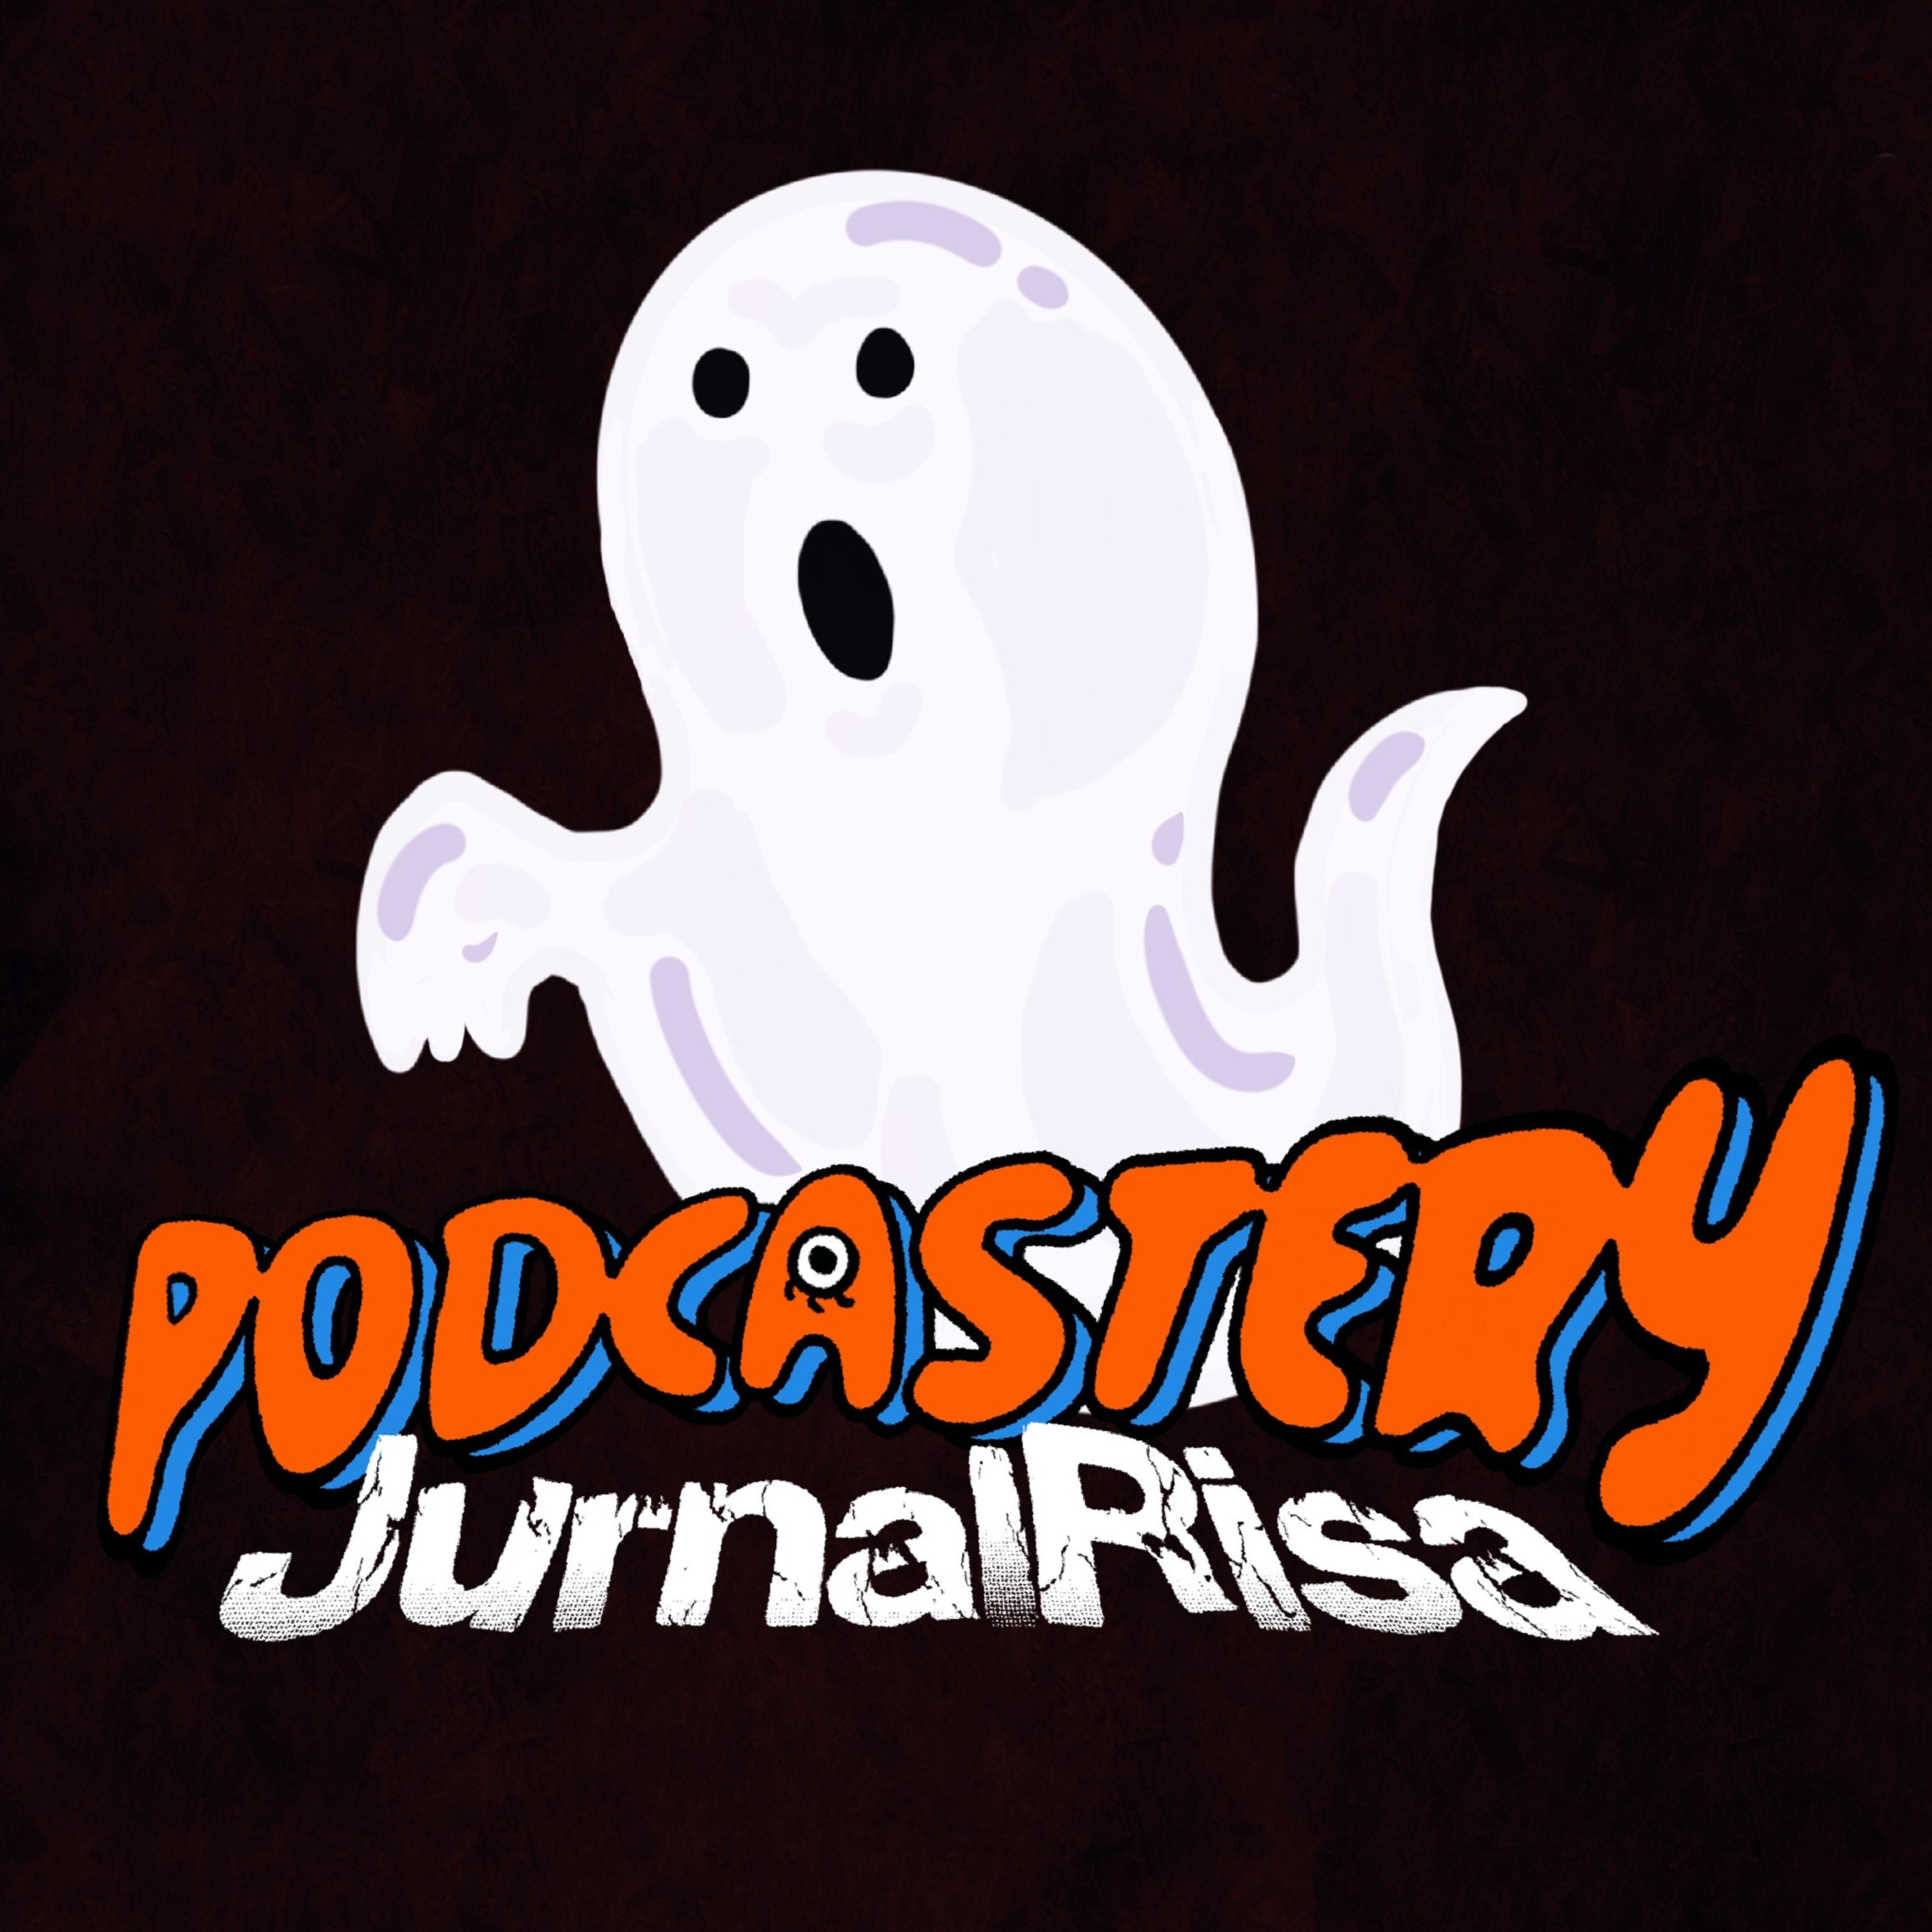 Podcastery Jurnalrisa A Podcast On Anchor